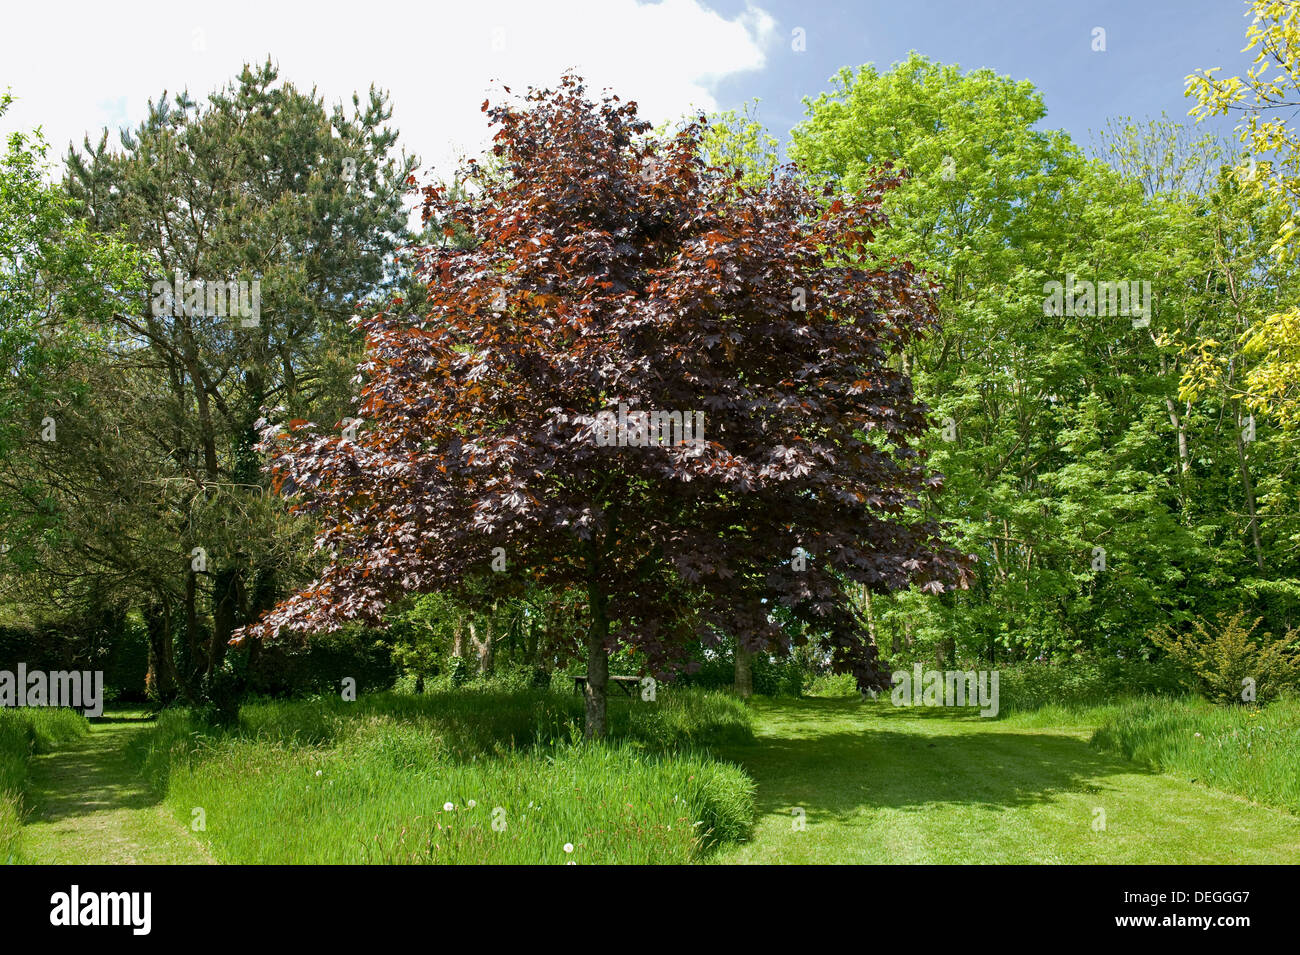 A red Acer maple Crimson King in young leaf in a wildlife garden and woodland - Stock Image